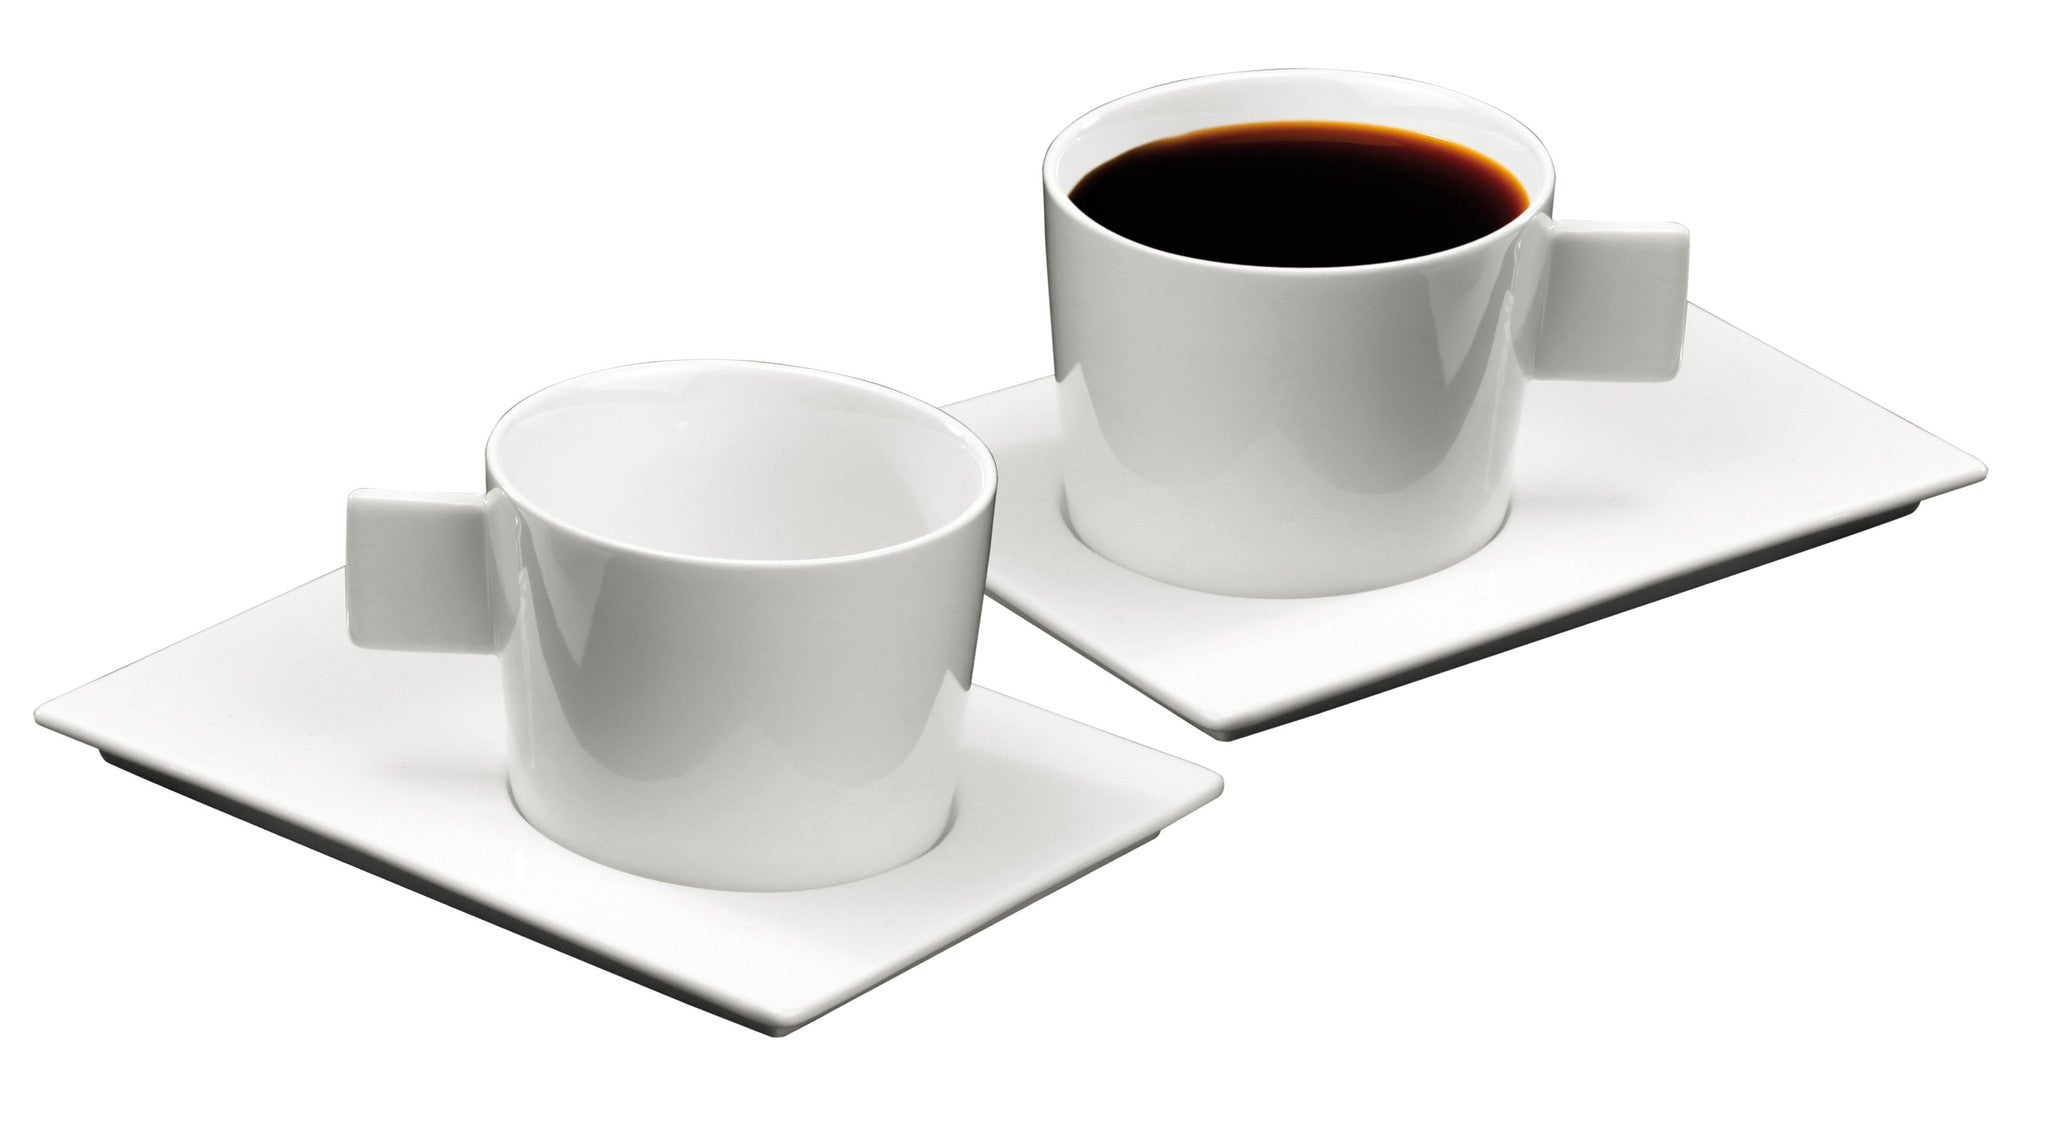 geo mondo set  american coffee cups and  saucers by deagourmet  - geo mondo set  american coffee cups and  saucers by deagourmet